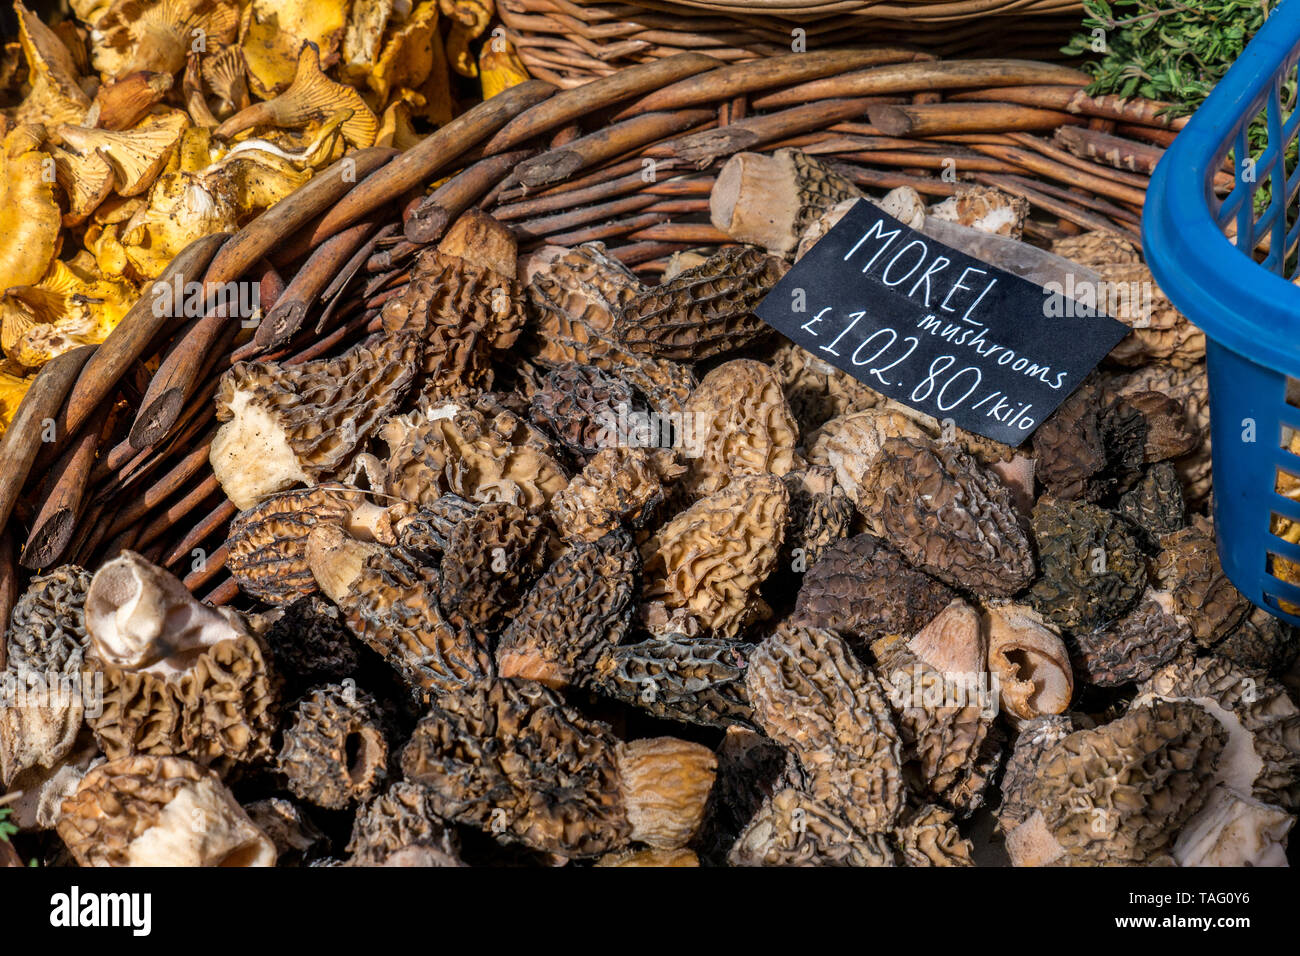 MOREL MUSHROOMS MARKET DISPLAY  Luxury rare expensive fresh Morel mushrooms with price label £102.80 pr Kilo at Borough Market farmers market Southwark London UK Morchella, the true morels, is a genus of edible sac fungi closely related to anatomically simpler cup fungi in the order Pezizales (division Ascomycota). These distinctive fungi have a honeycomb appearance due to the network of ridges with pits composing their caps. Morels are much prized by gourmet cooks, particularly in haut cuisine - Stock Image